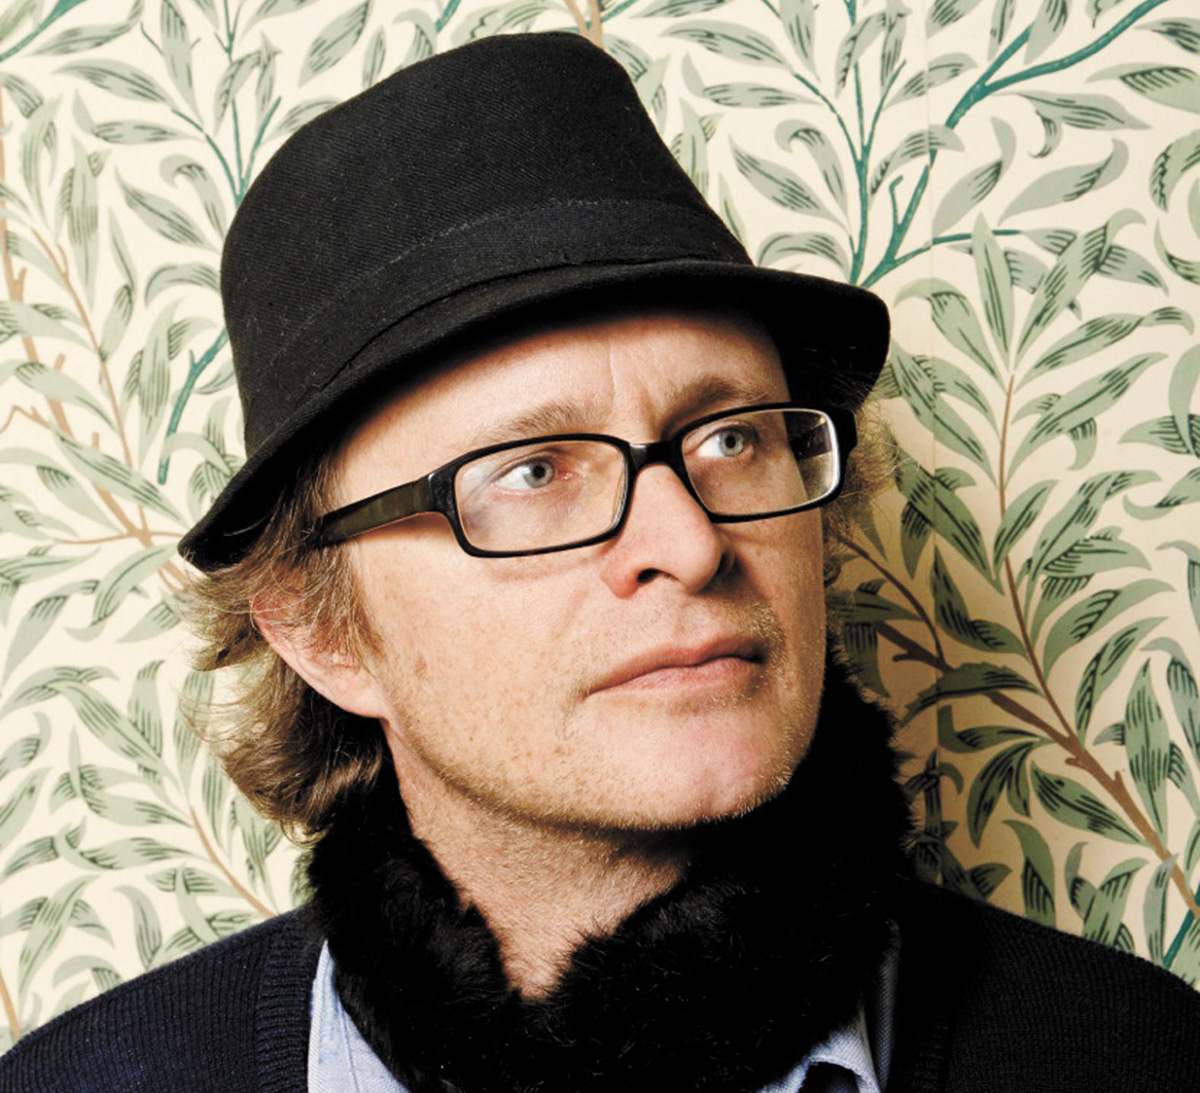 Simon Munnery grew up in Bedmond and was a pupil at Watford Grammar School for Boys